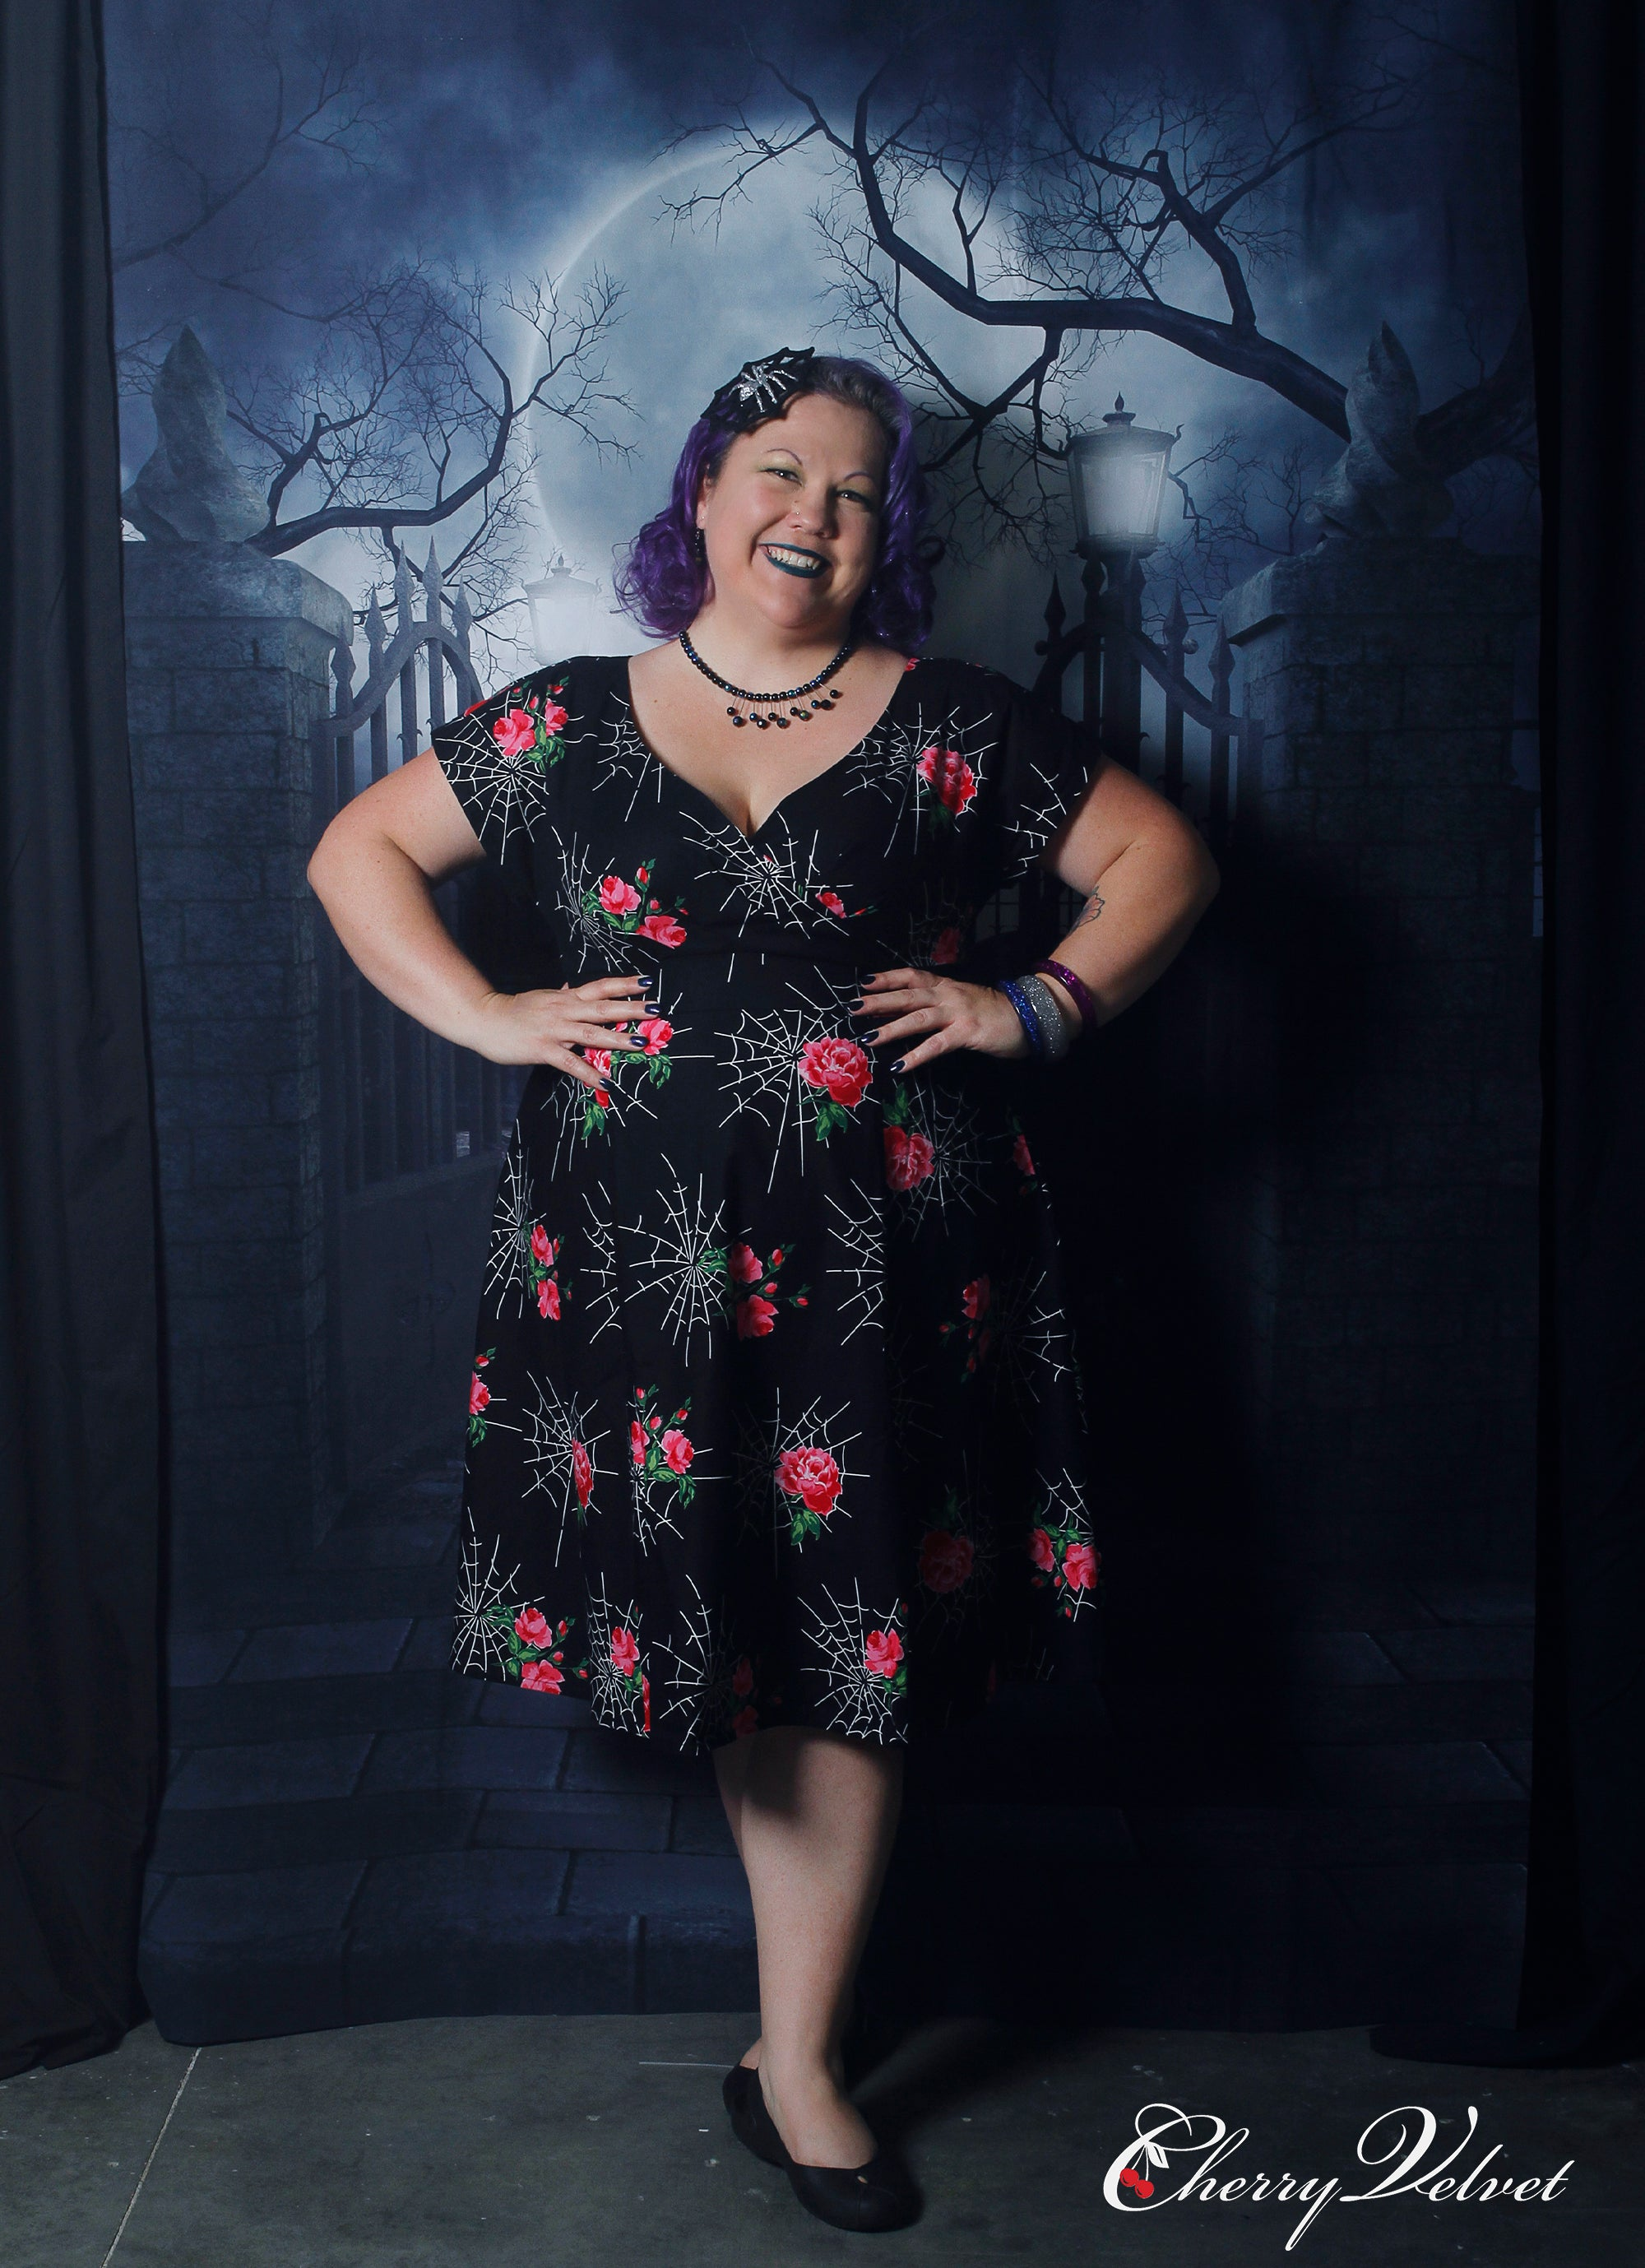 Customer in Cherry Velvet dress at Halloween is Brewing event